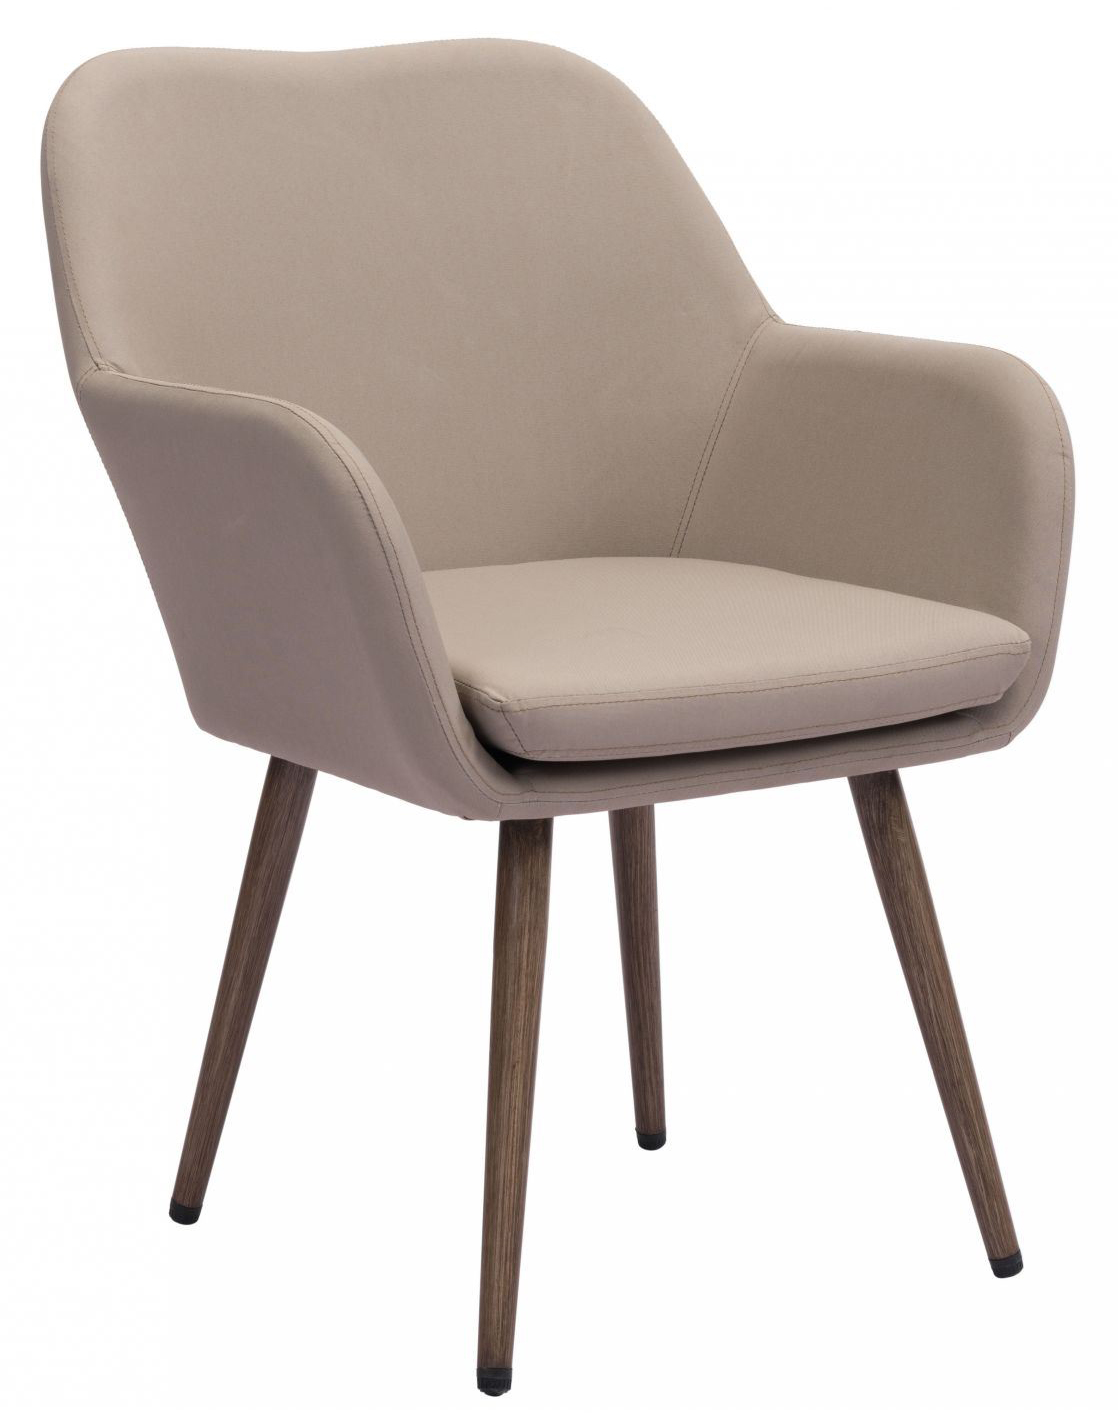 zuo pismo dining chair taupe